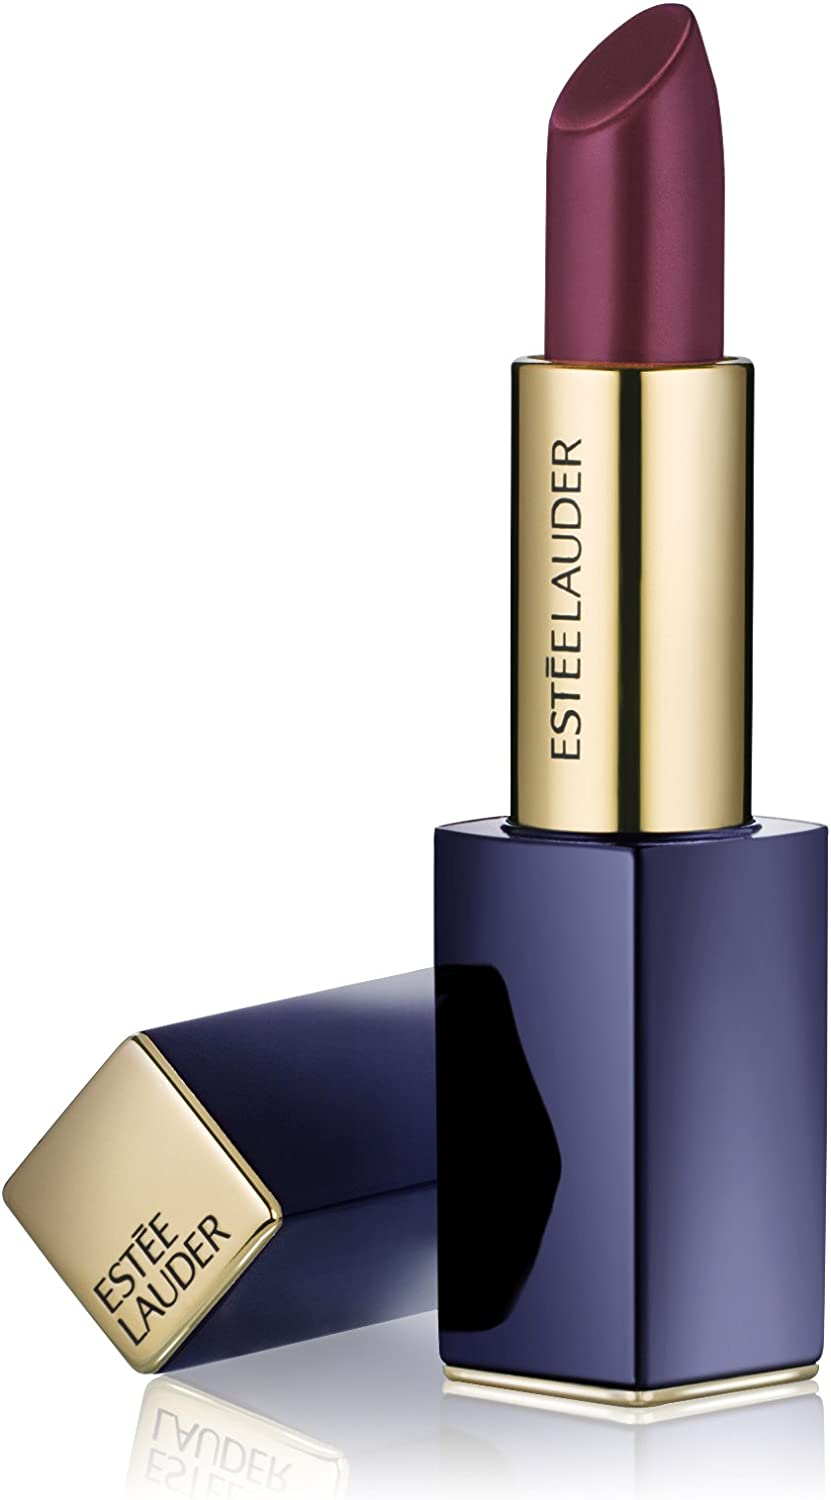 ESTEE LAUDER PURE COLOR ENVY 10: Amazon.es: Belleza